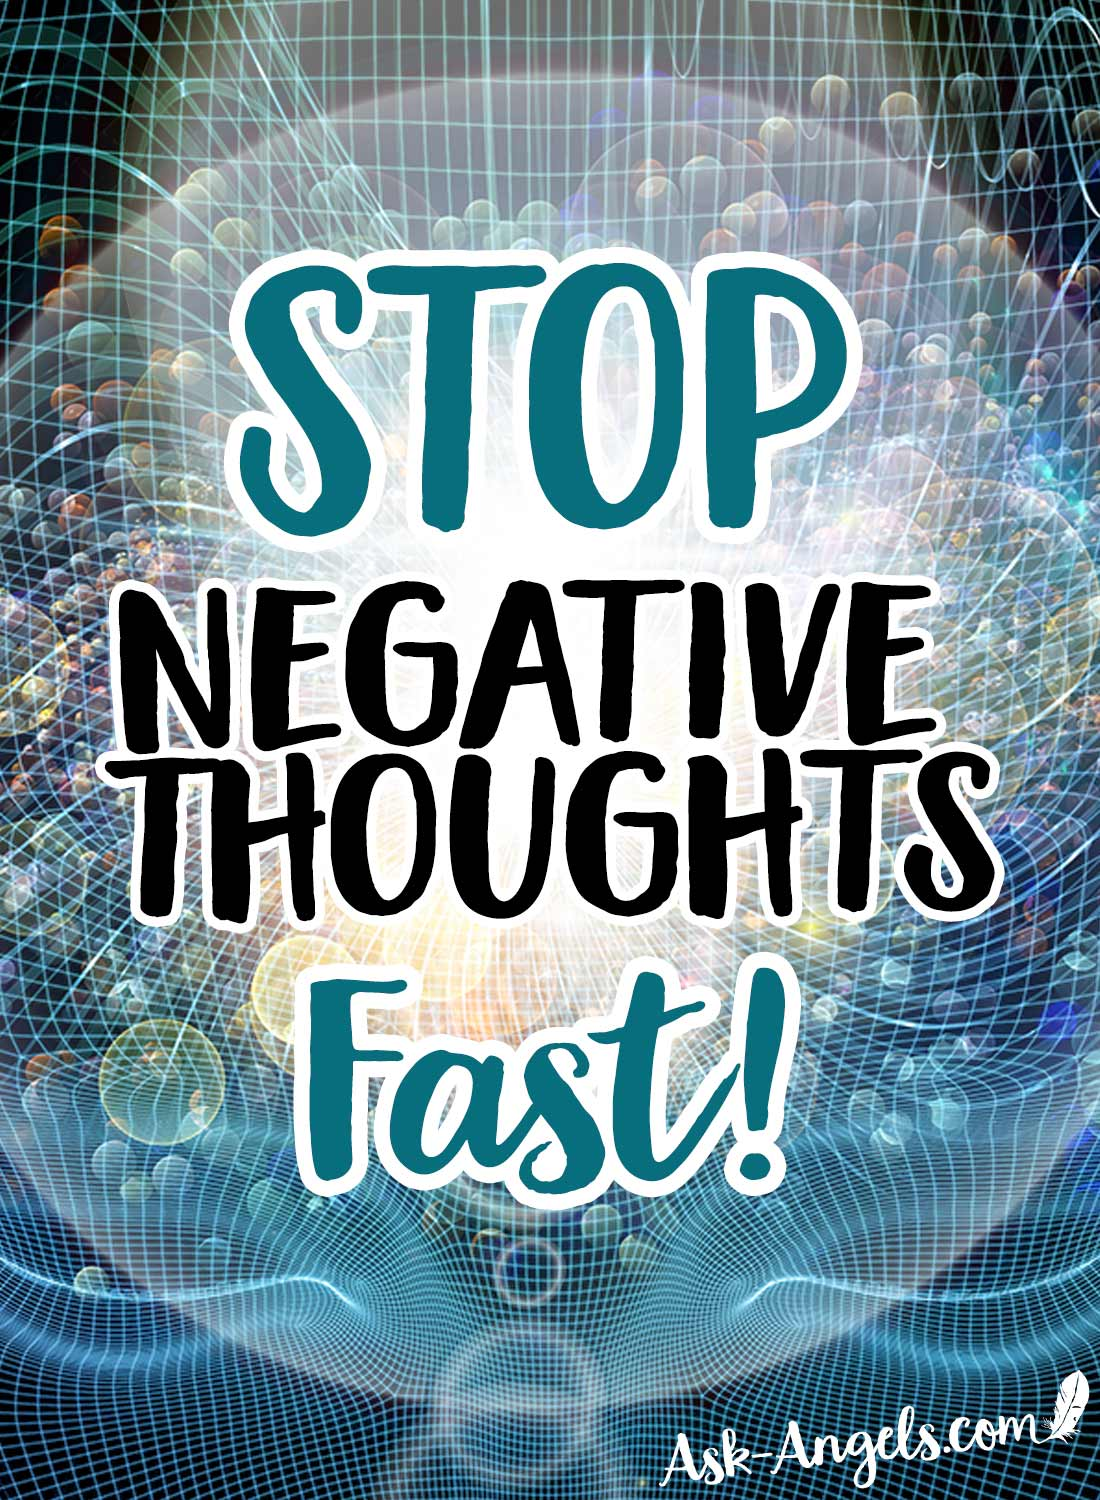 Negative thinking lowers your vibration and blocks you off from manifesting what you really want. So how do you STOP your Negative Thoughts in their tracks?